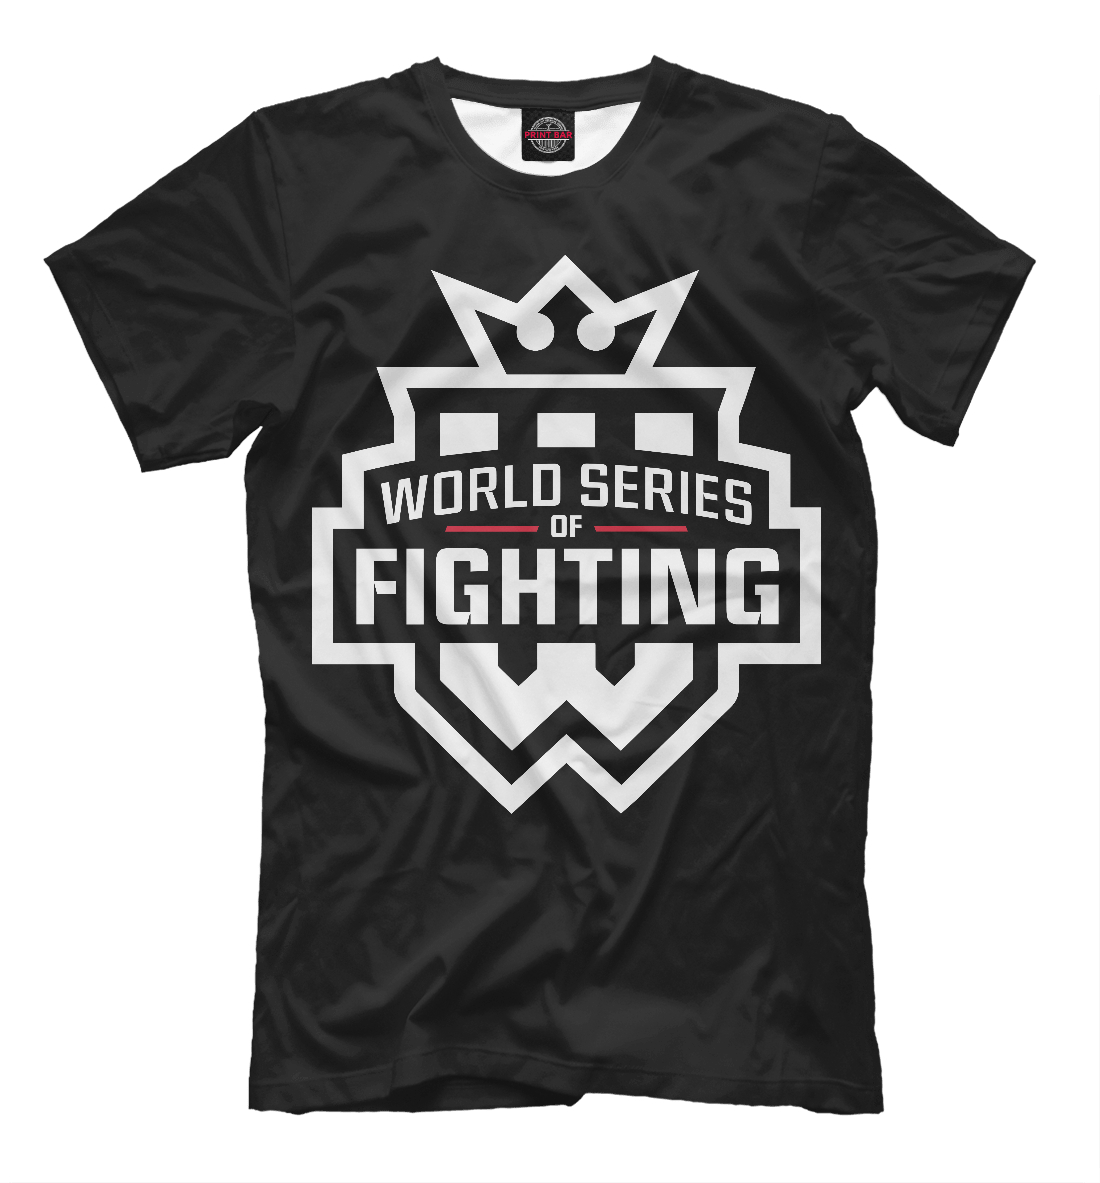 Купить WSOF: World Series Of Fighting, Printbar, Футболки, MNU-263153-fut-2